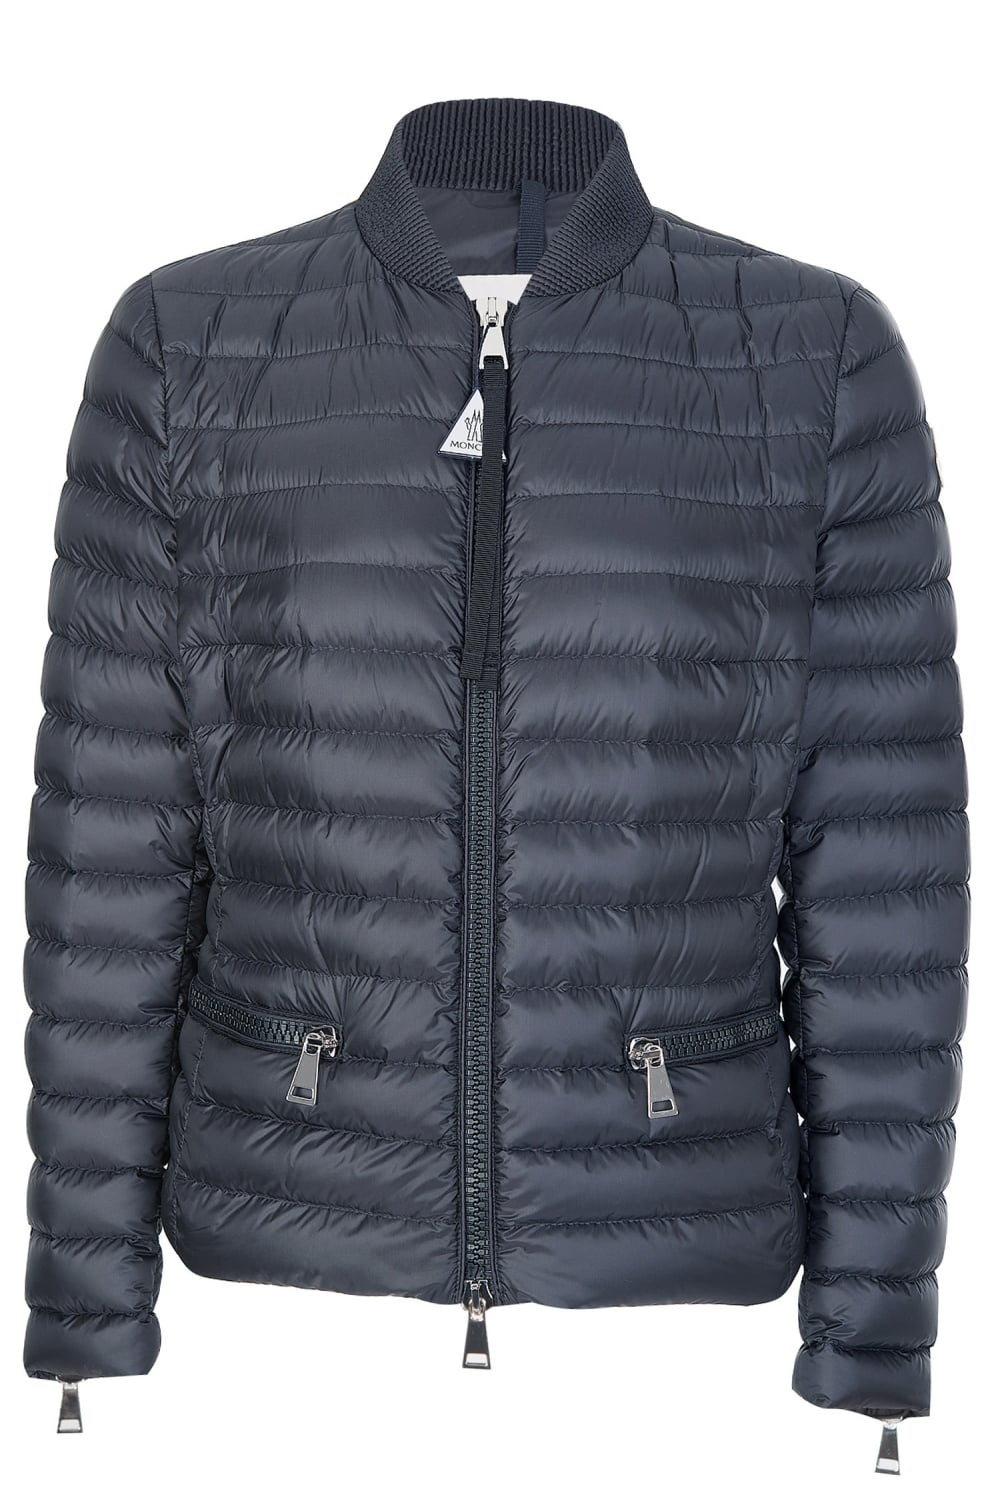 ef5951ee4 Women's Blen Jacket Black